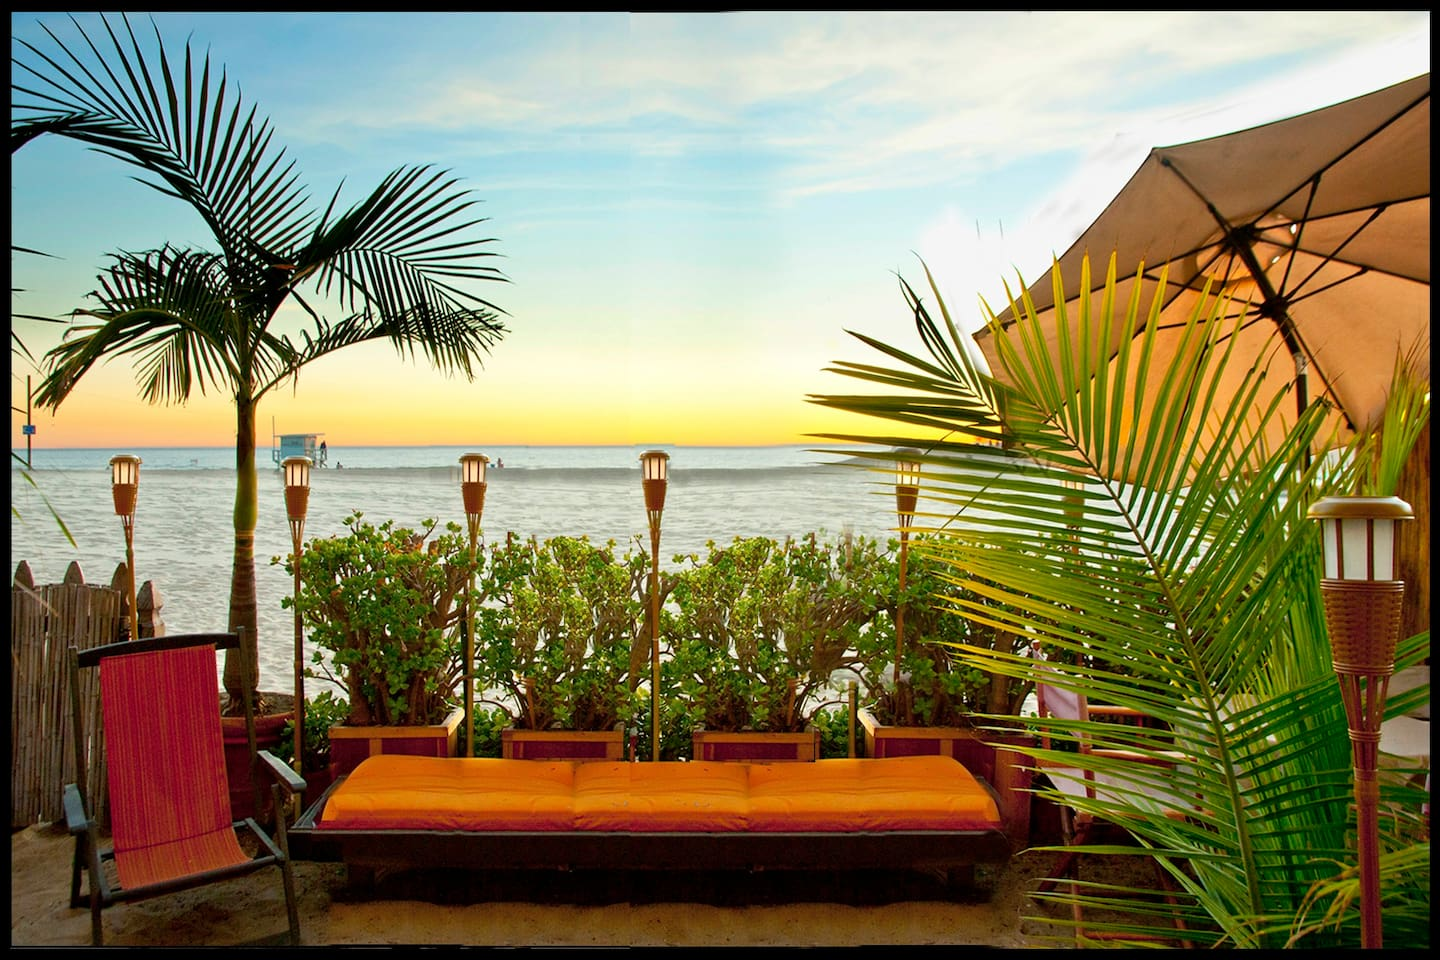 Step right onto the sand and enjoy our tropical beachfront patio, sun lounge chairs and dining tables.